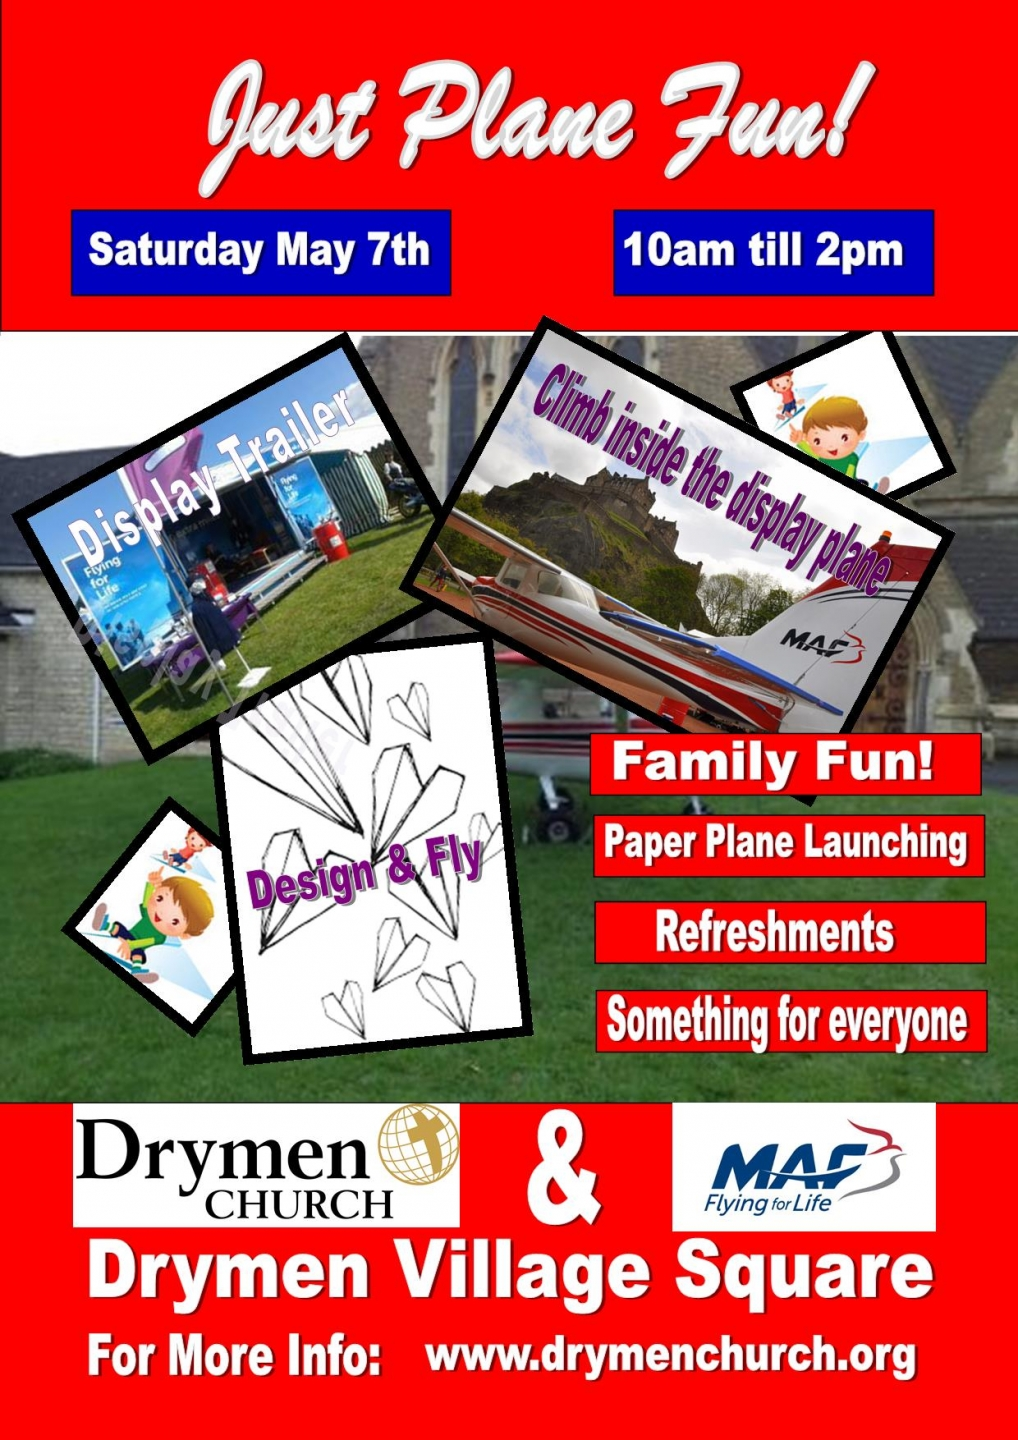 Just Plane Fun! - event at Drymen in partnership with Drymen Church and MAF